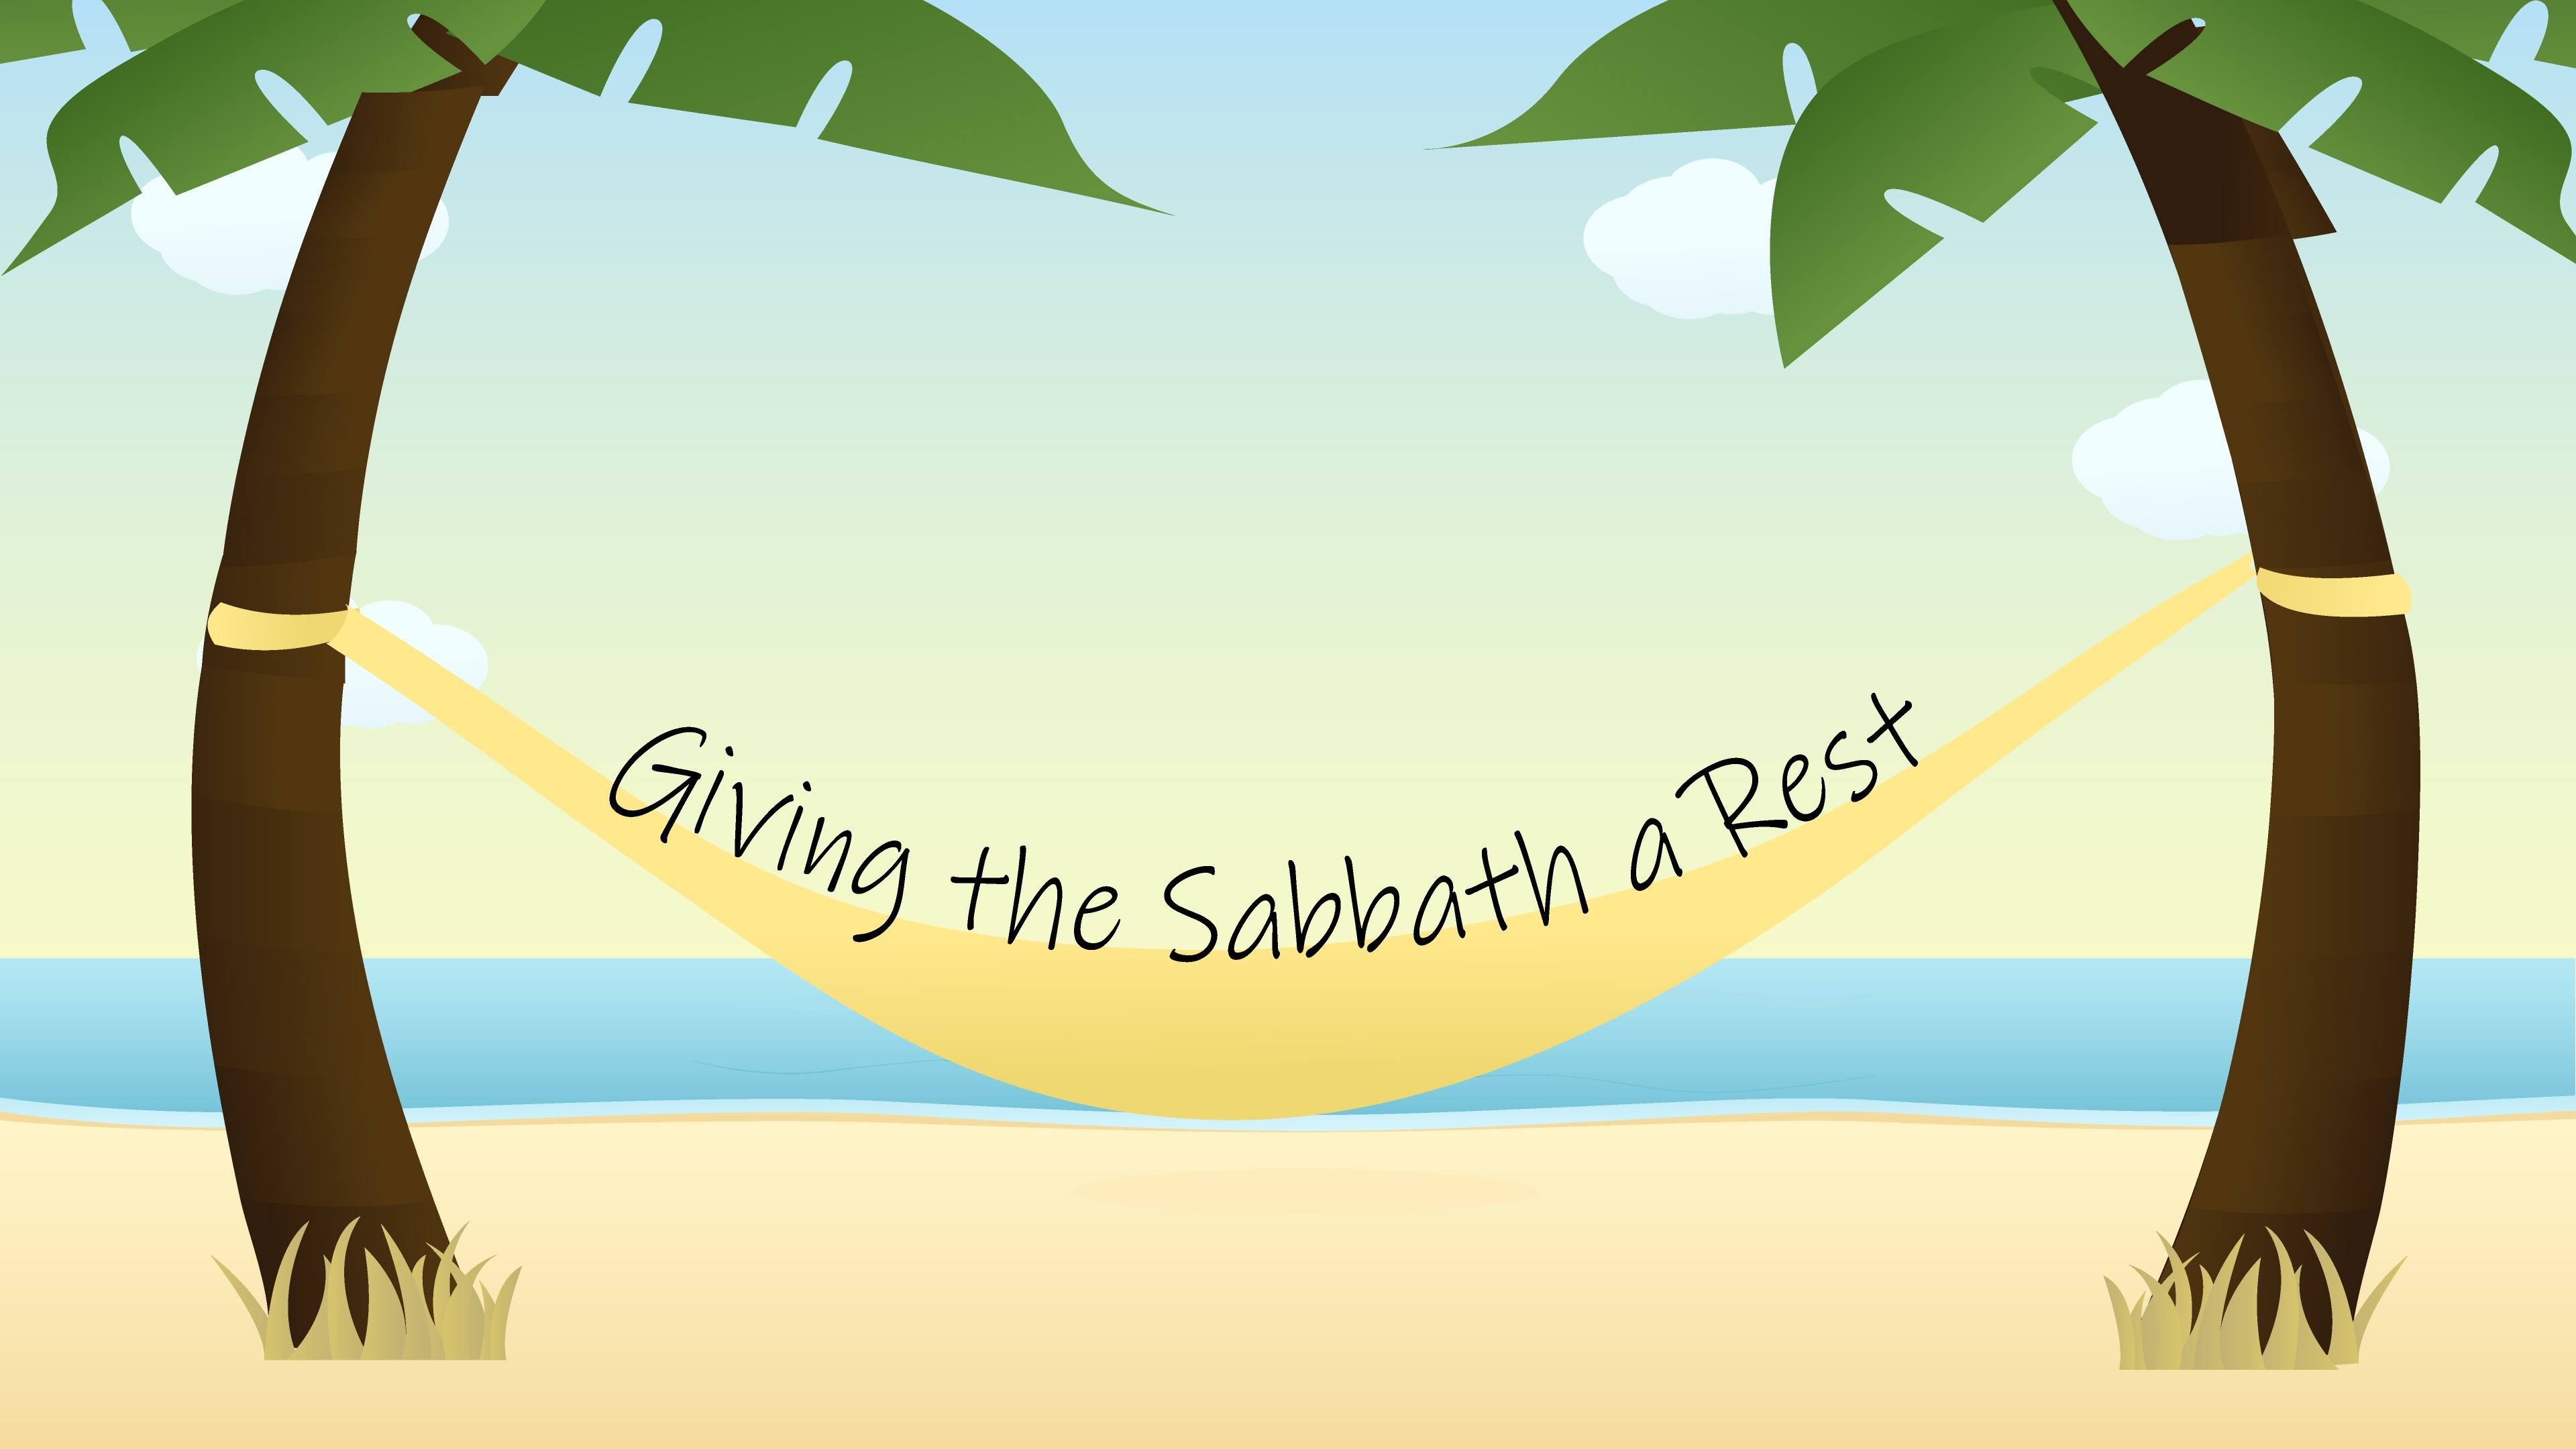 Giving the Sabbath a Rest